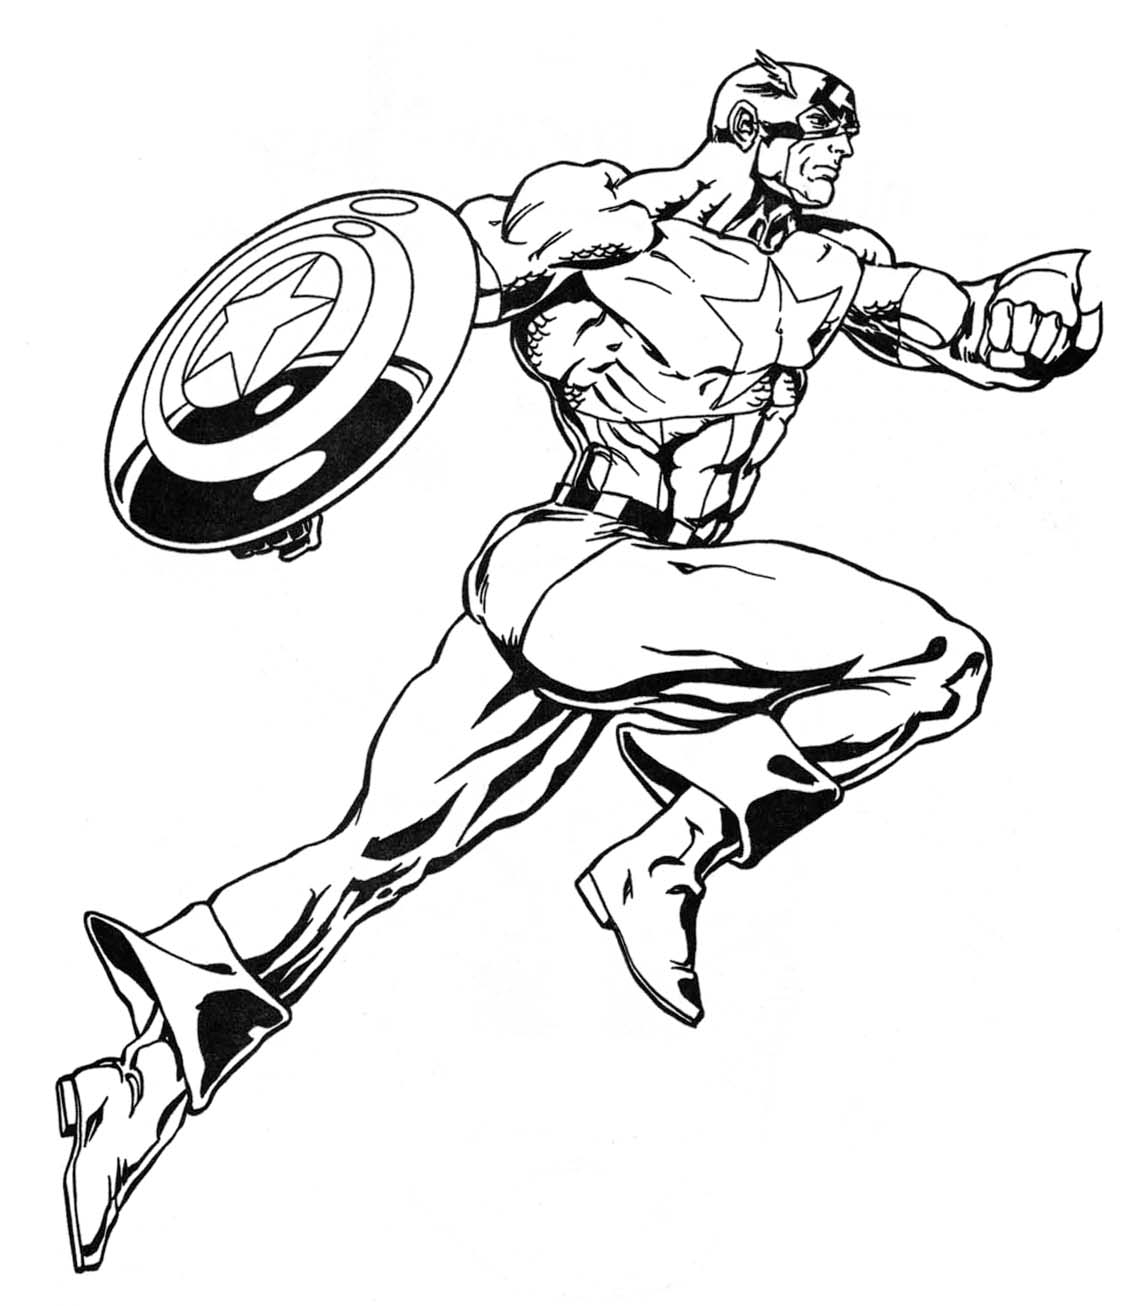 marvel superheroes coloring pages - photo#11